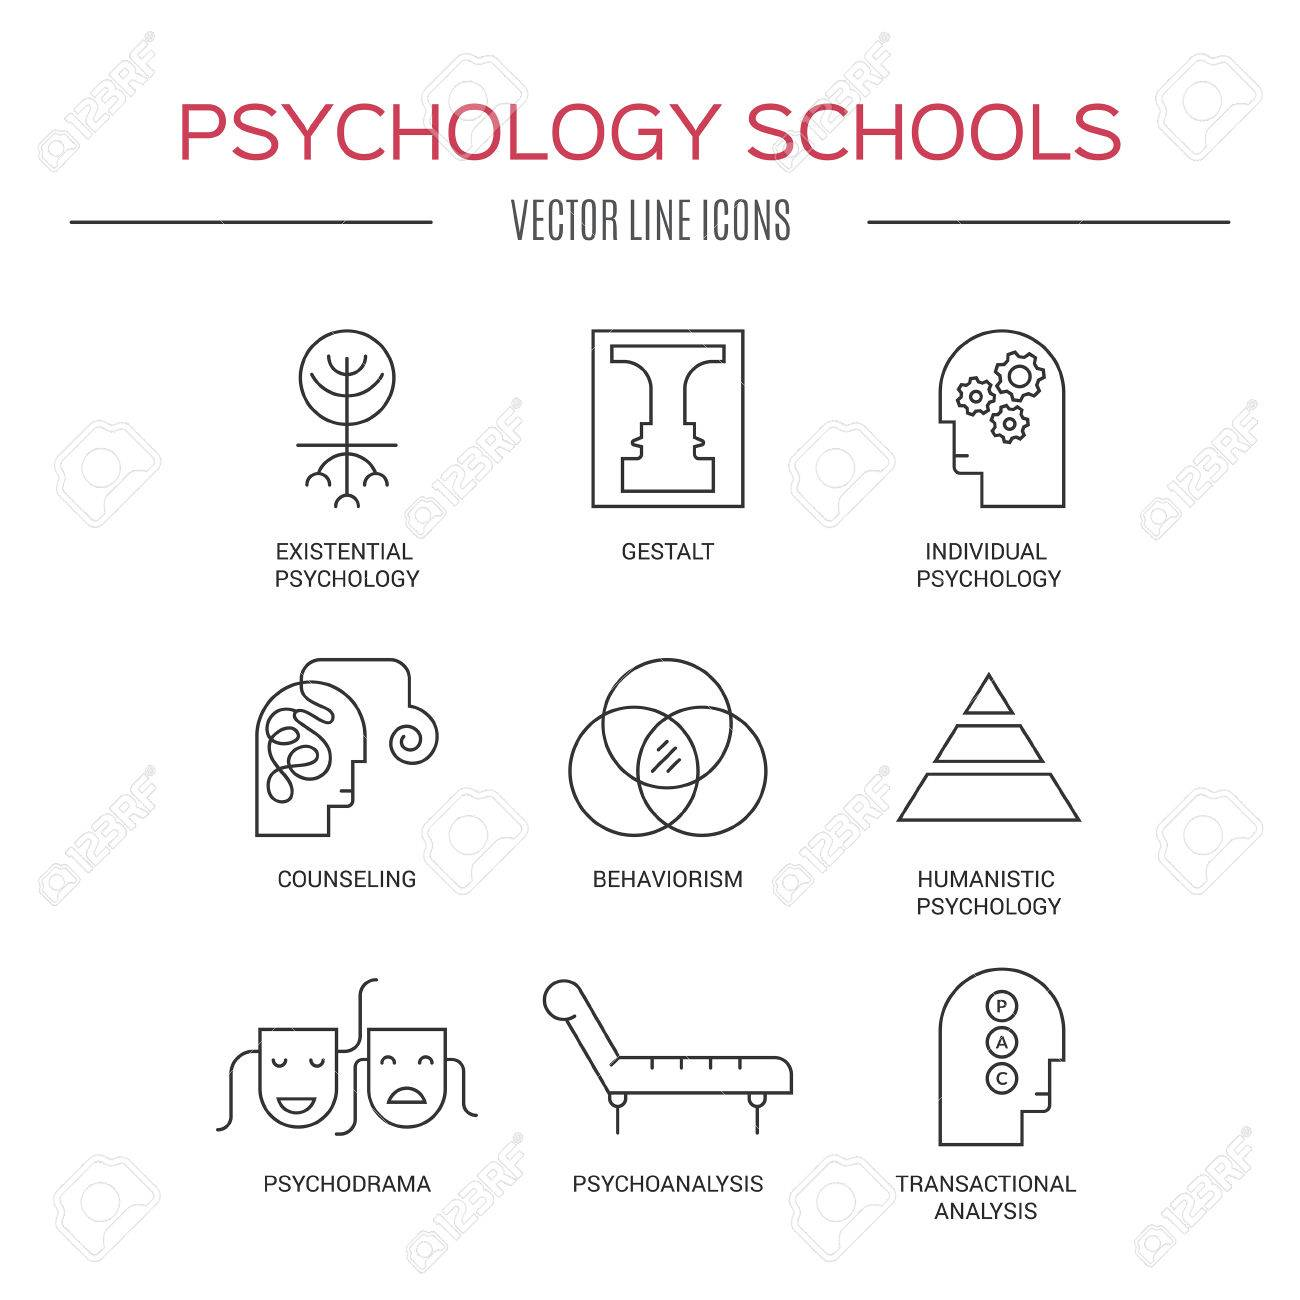 line style vector icons introducing different psychology theories including psychoanalysis counseling existential psychology